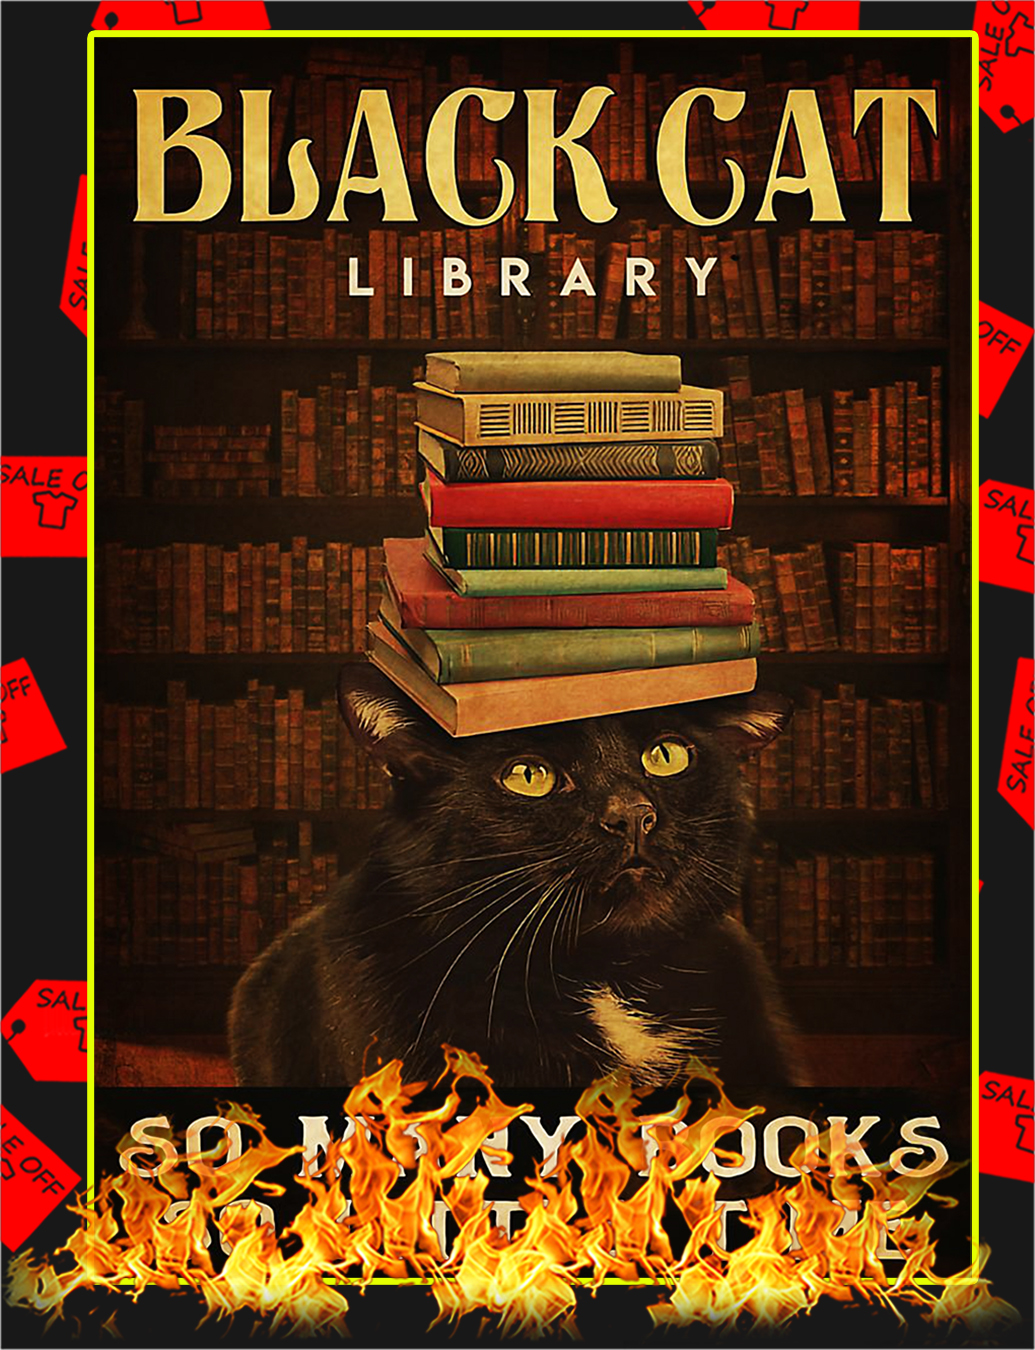 Black cat library so many books so little time poster - A3